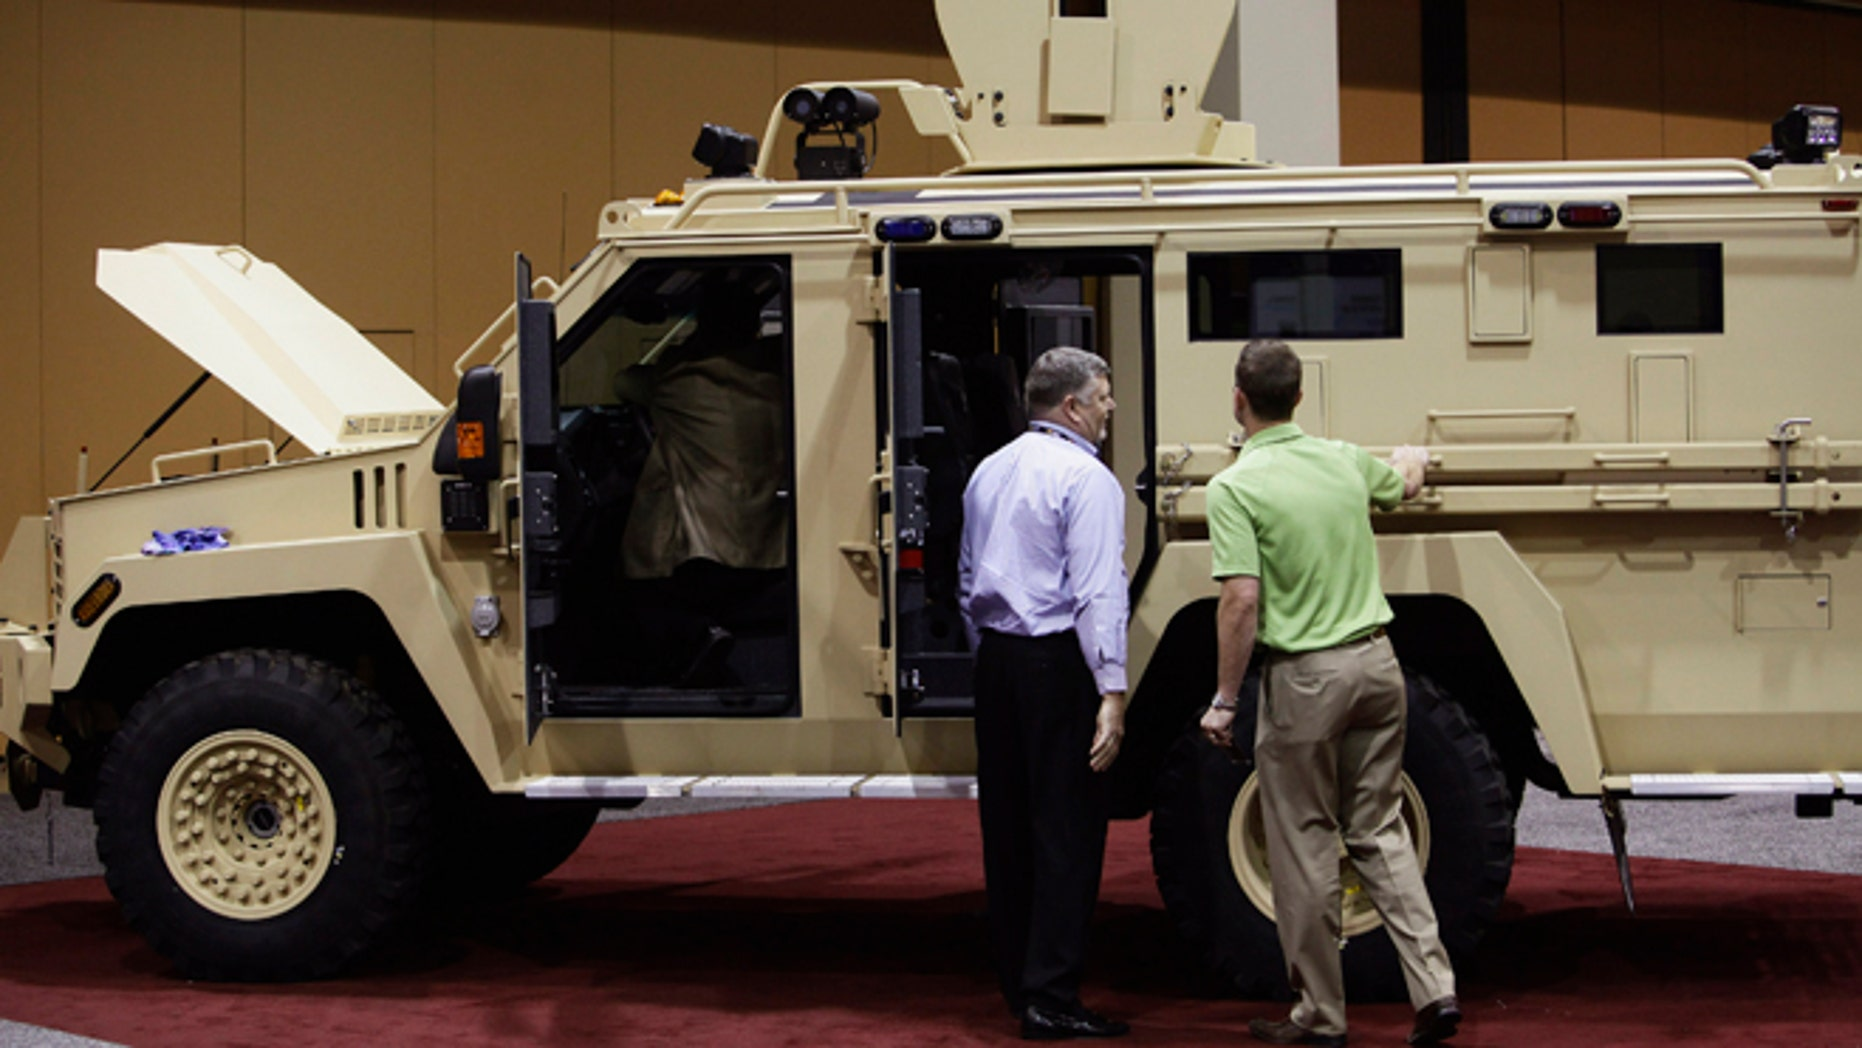 March 12: Attendees look at the Lenco MRAP Bear SWAT Team vehicle at the 7th annual Border Security Expo in Phoenix, Arizona.